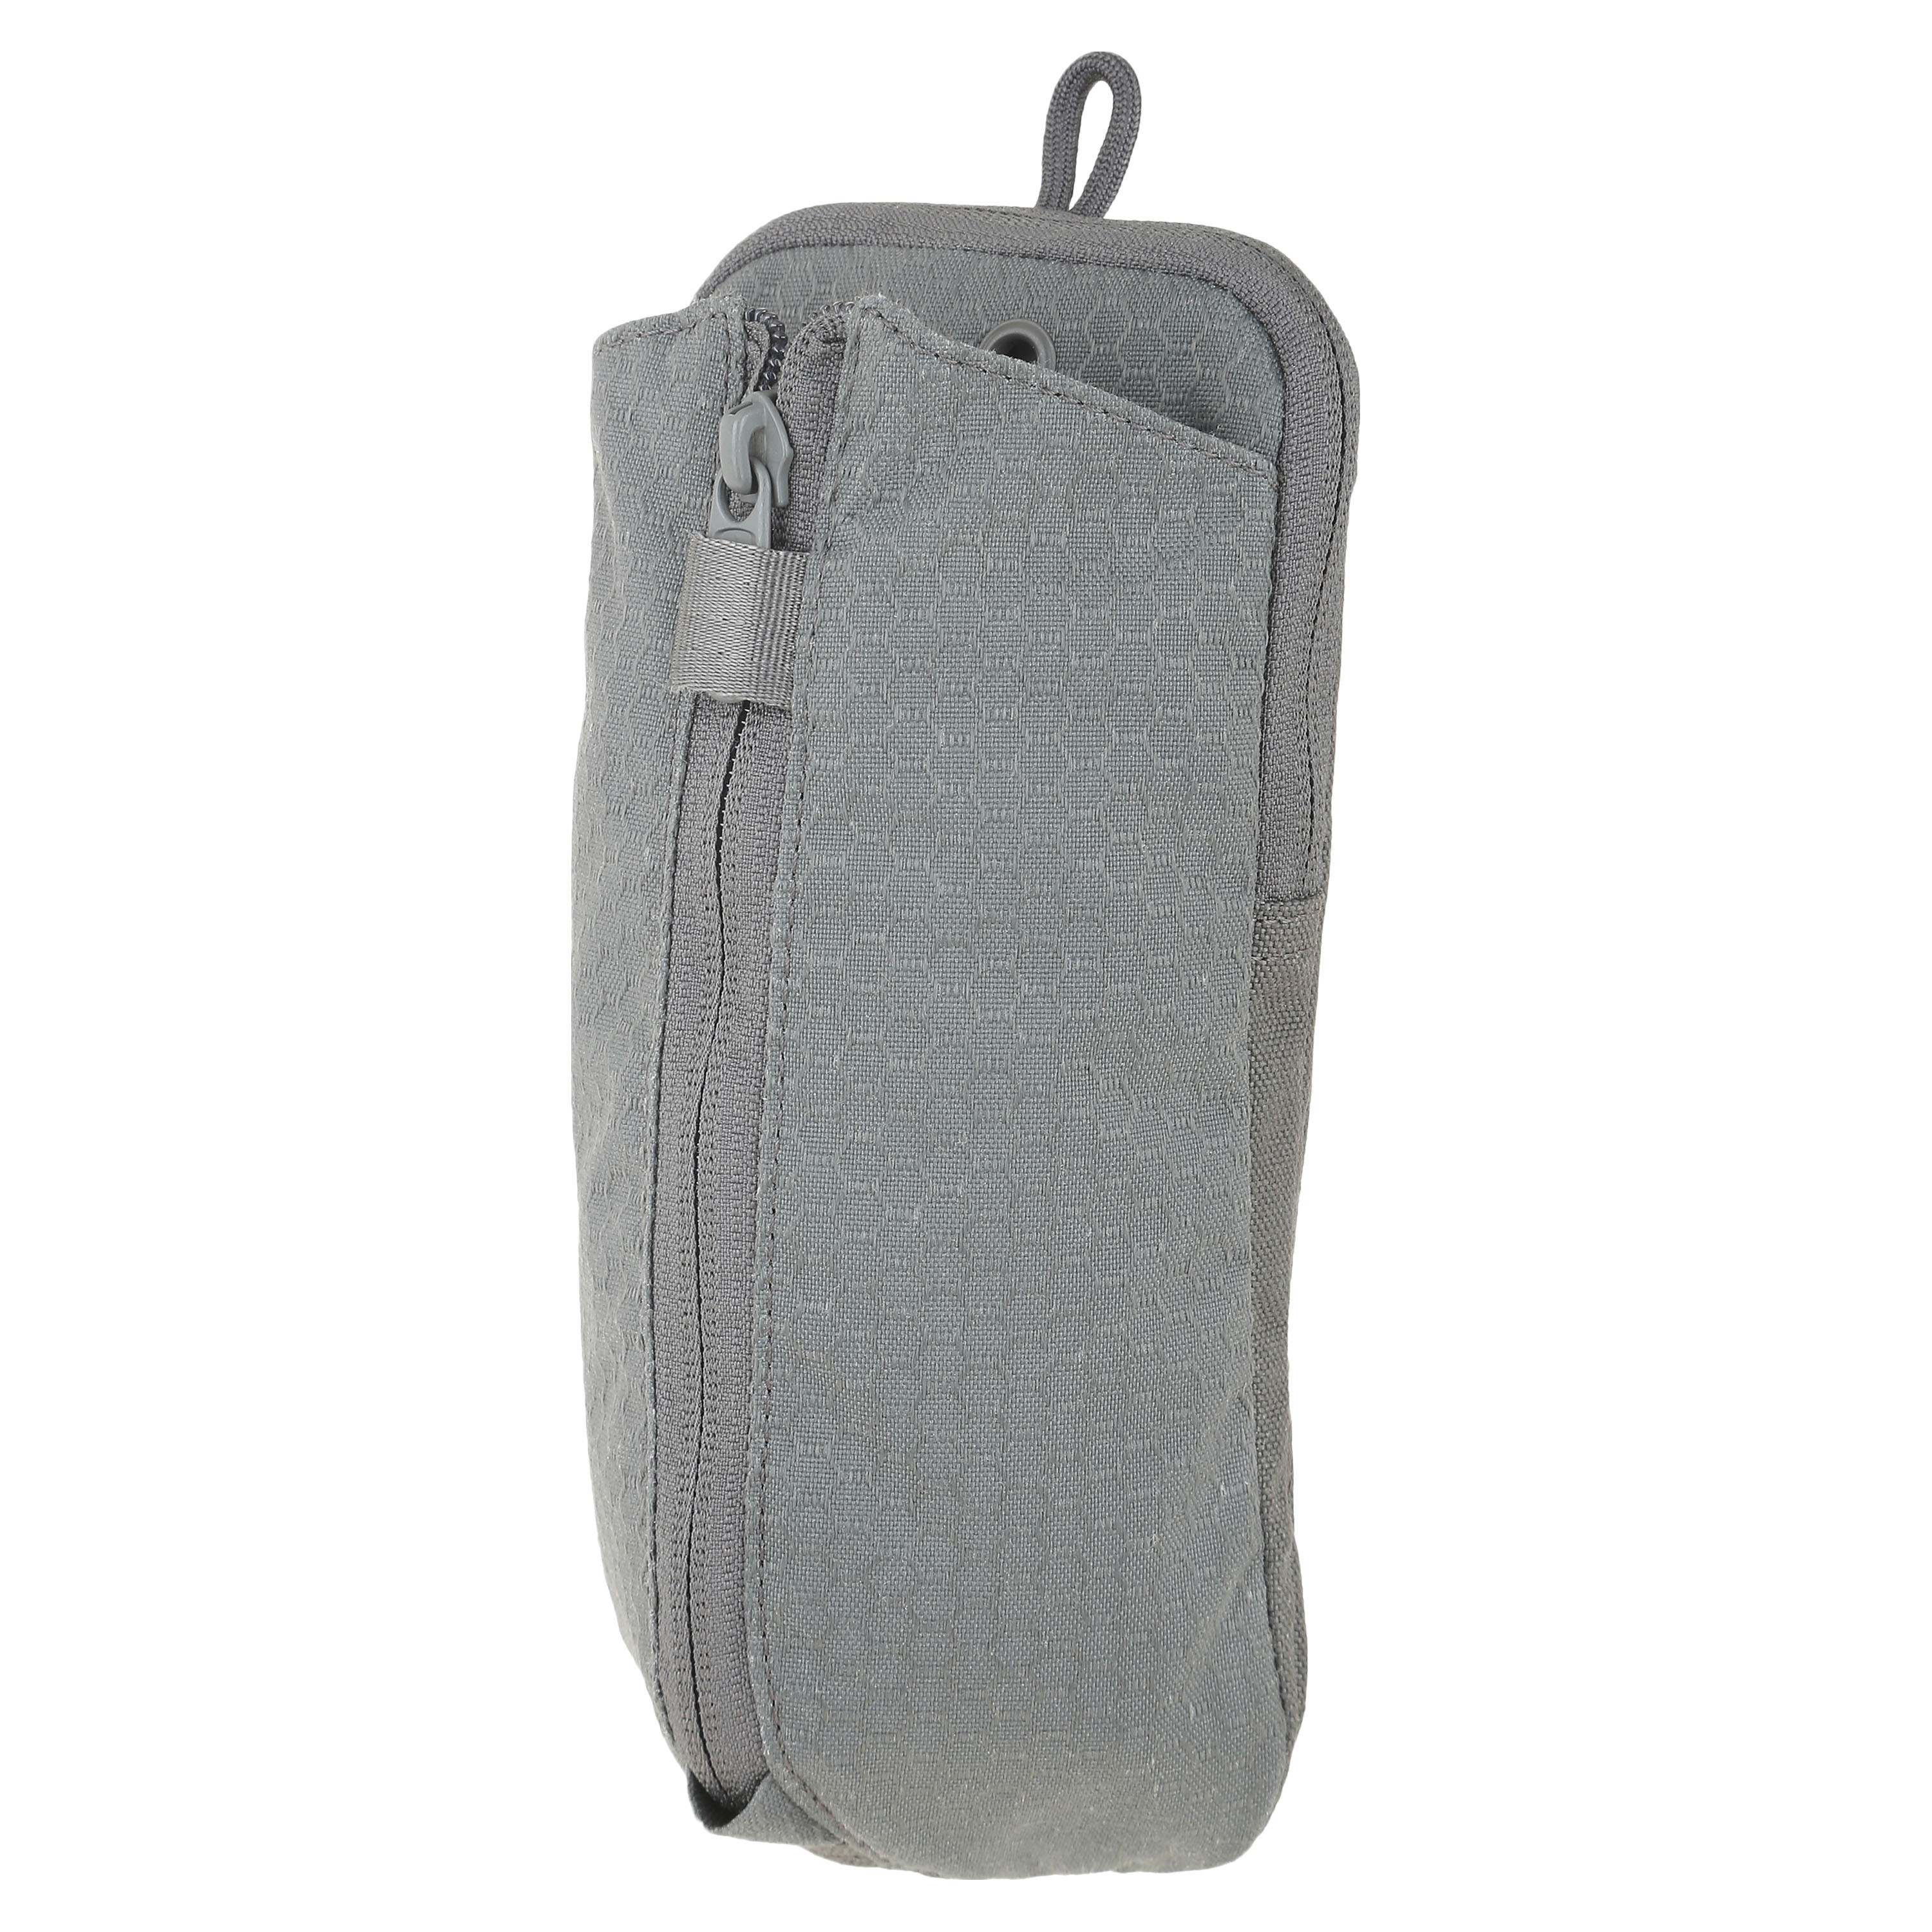 Maxpedition Porte-gourde extensible gris